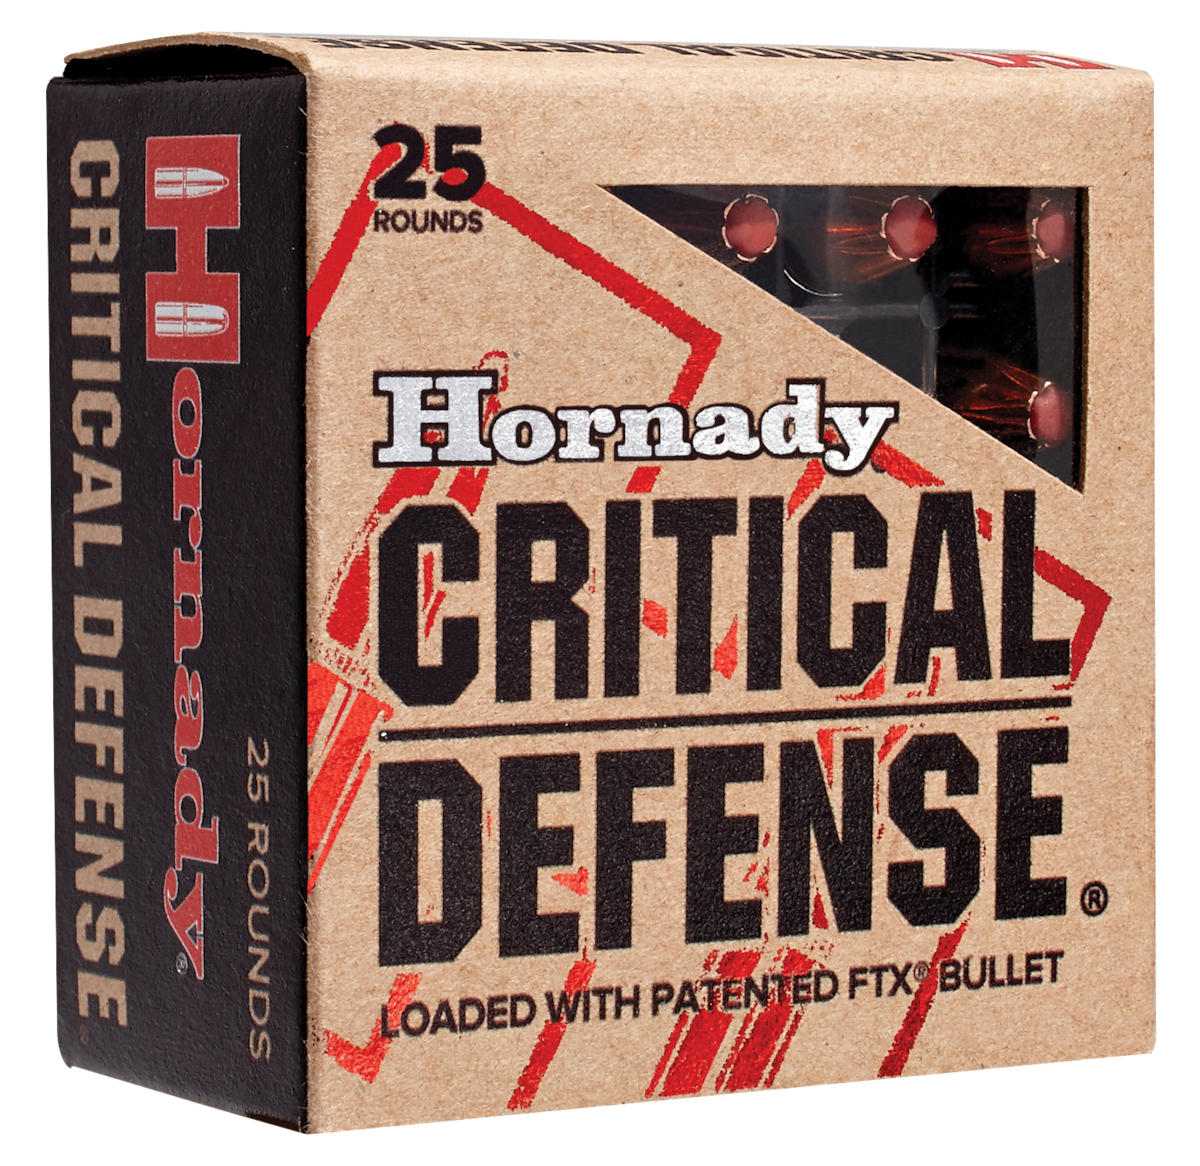 HORNADY CRITICAL DEFENSE